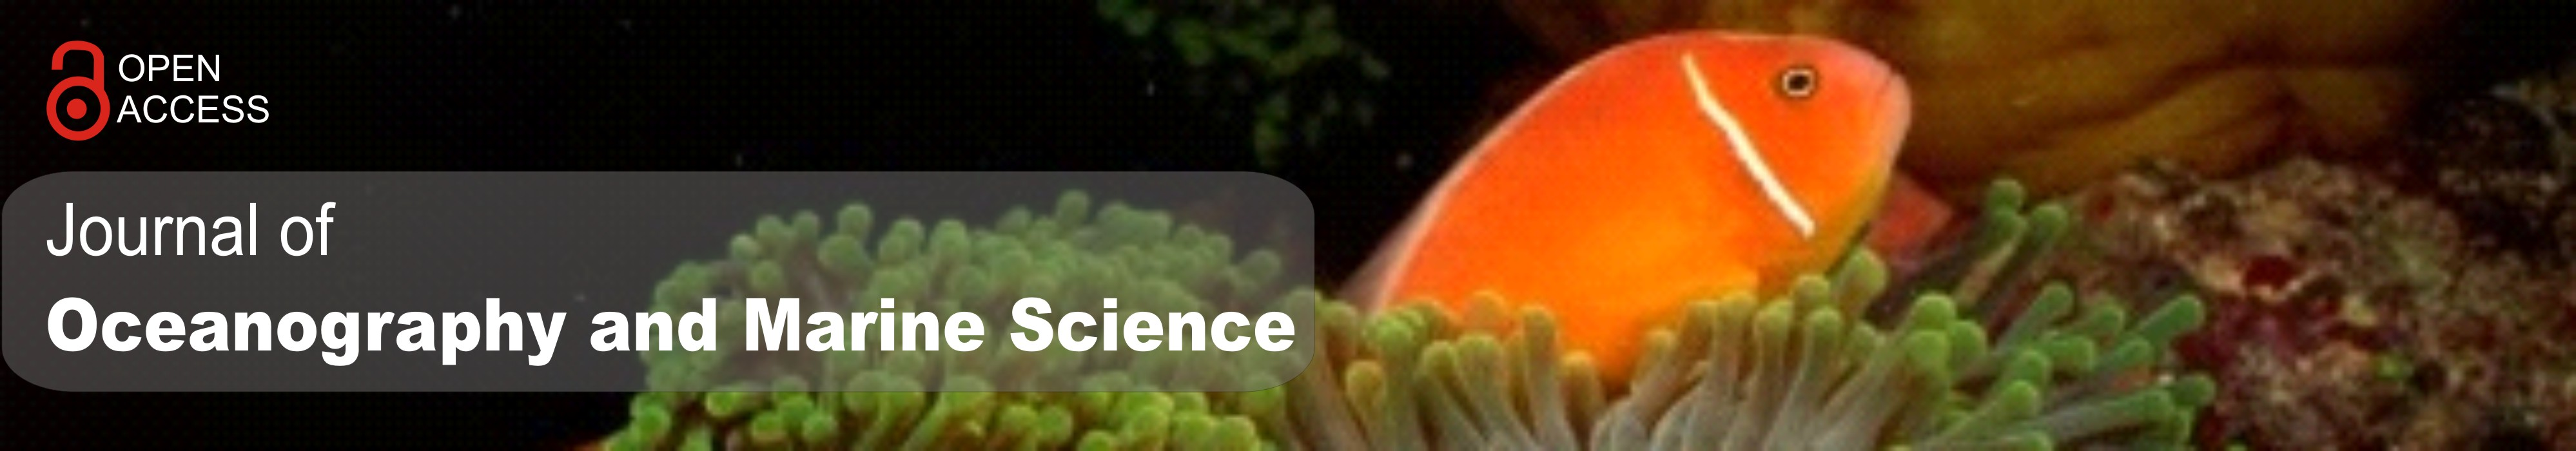 Journal of Oceanography and Marine Science